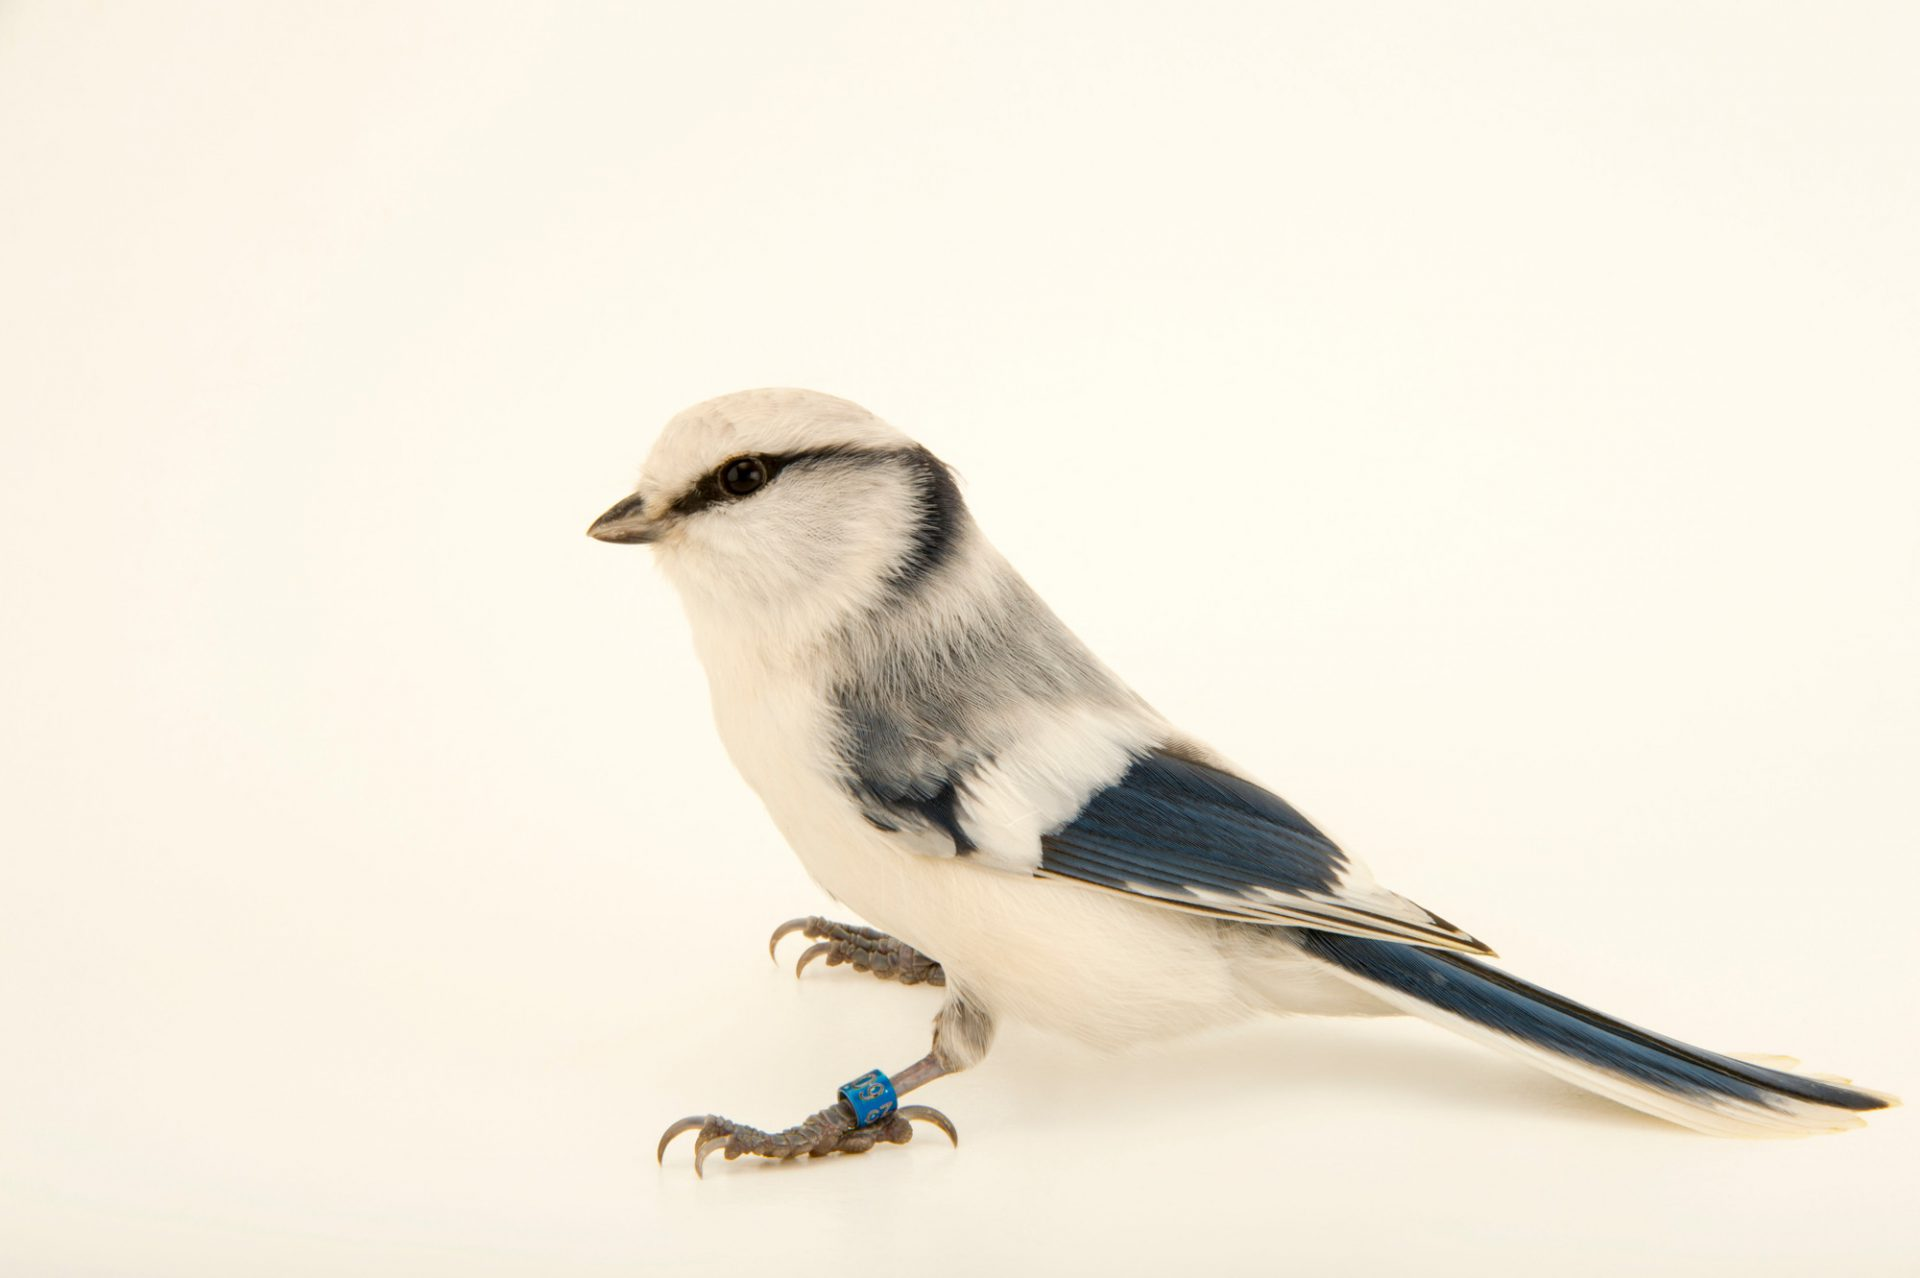 Photo: Azure tit (Parus cyanus cyanus) from ural mountains, at the Plzen Zoo in the Czech Republic.